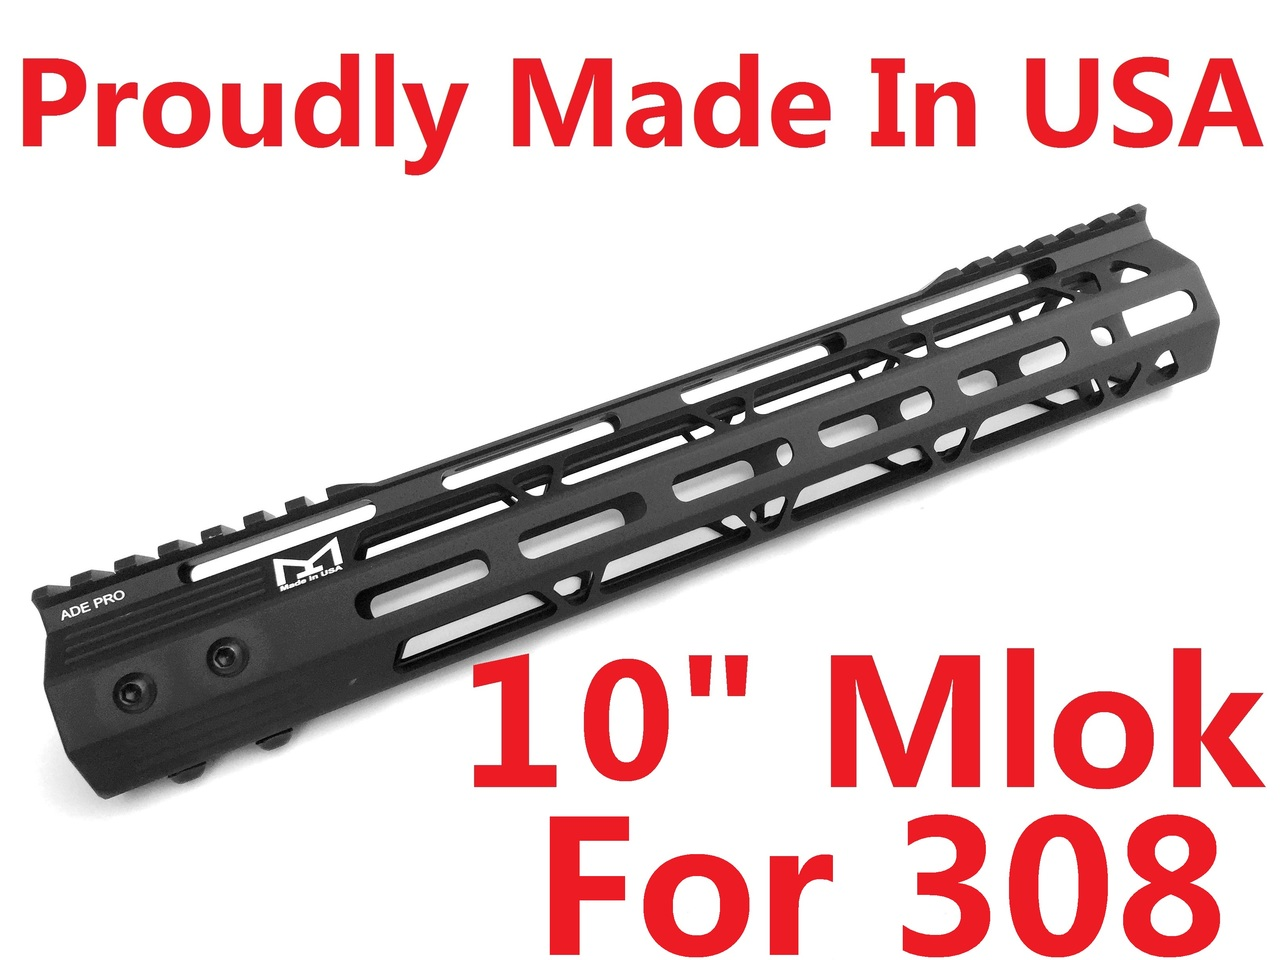 "FOR 308! LR308! -MADE IN USA!- ADE PRO 10"" INCH MLOK RAIL SUPER SLIM HANDGUARD FREE FLOAT M-LOK"